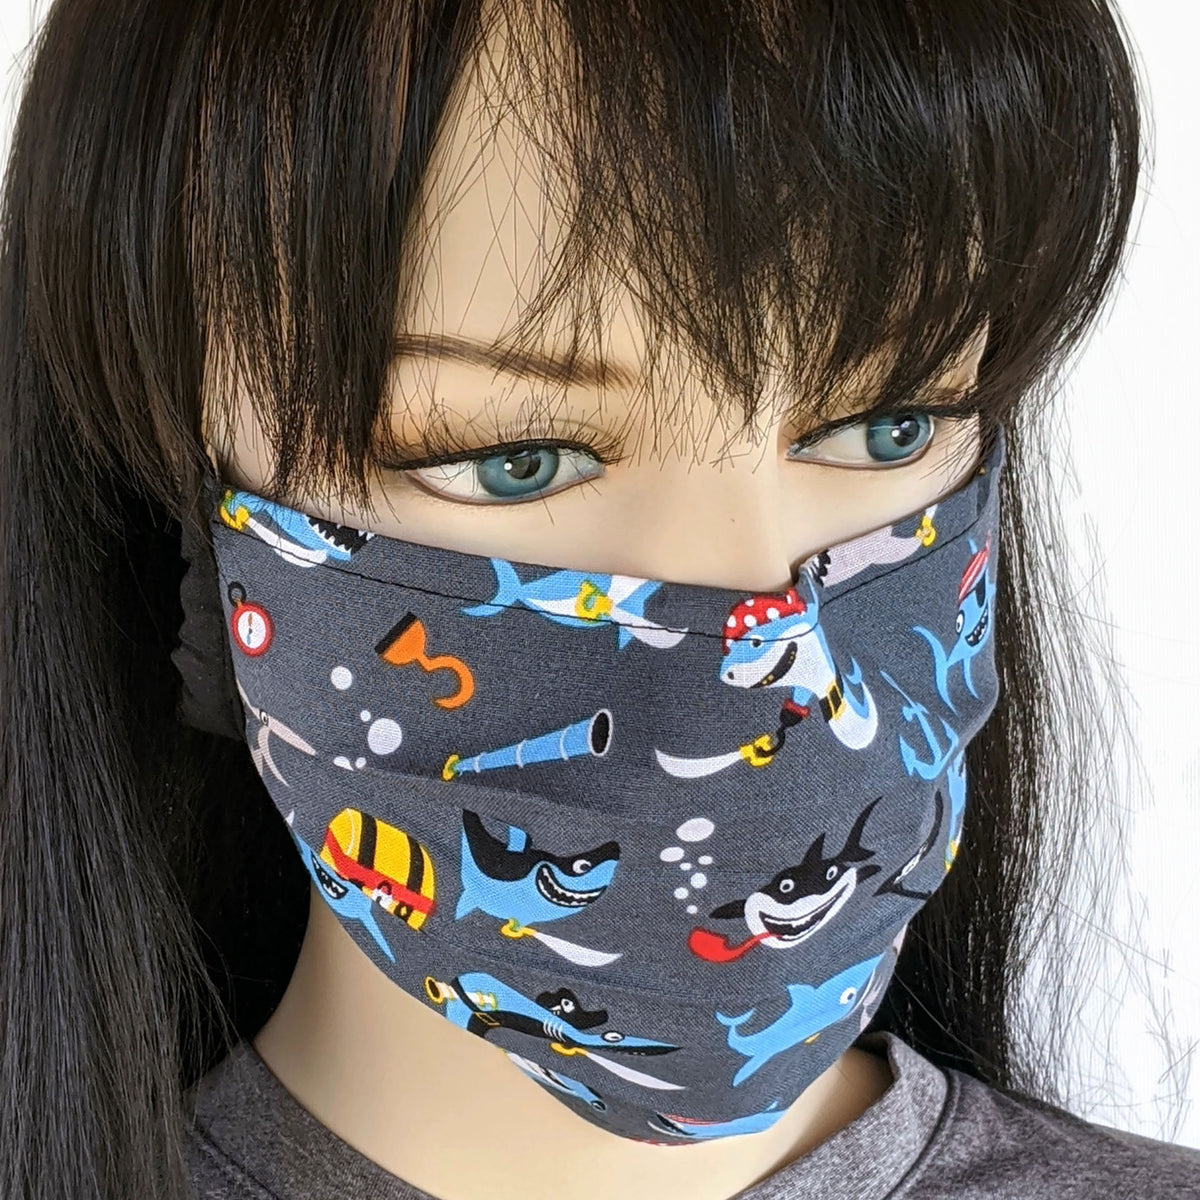 Accordion pleated fold style fabric face mask, pirate sharks, one size